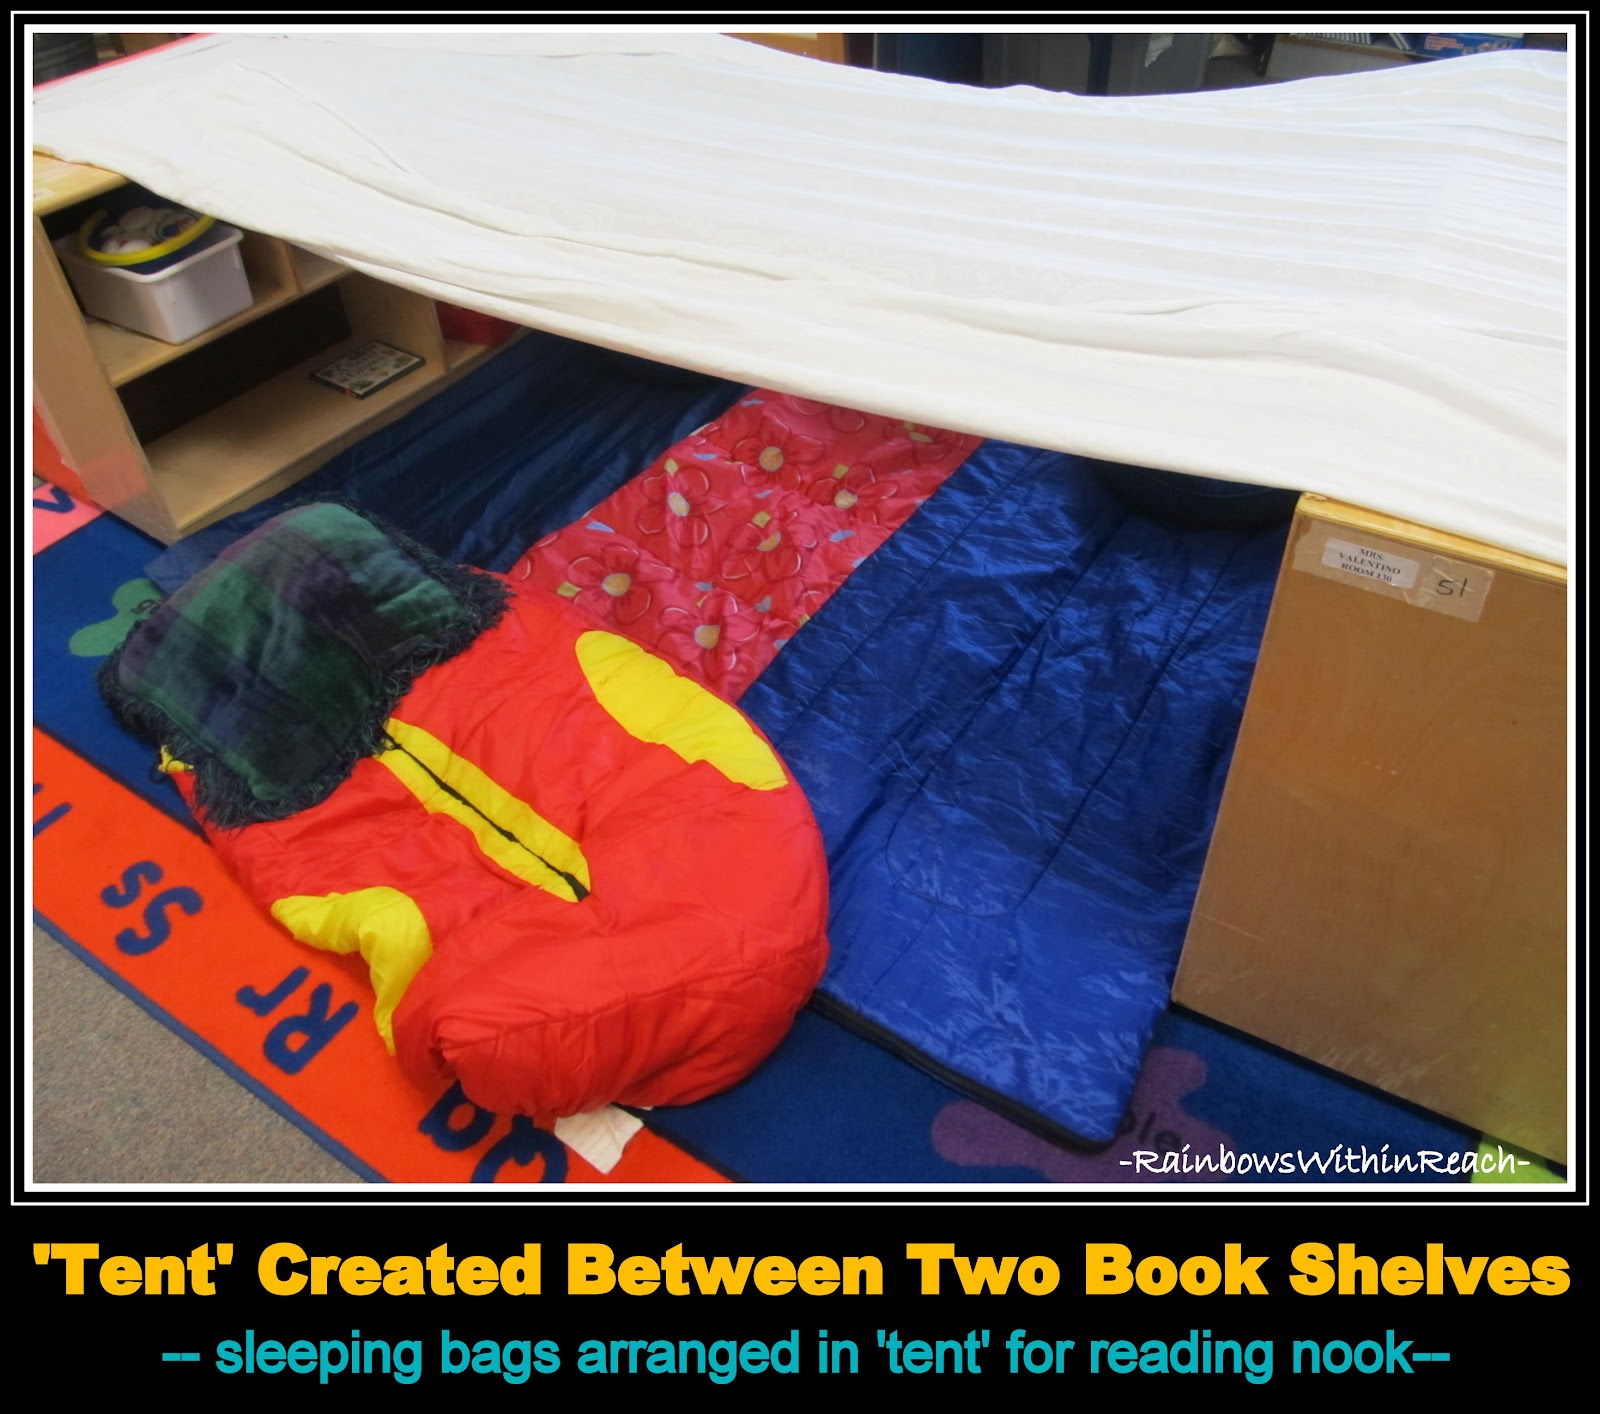 Photo Of Camping Tent Created At Preschool With Sleeping Bags For Reading Nook